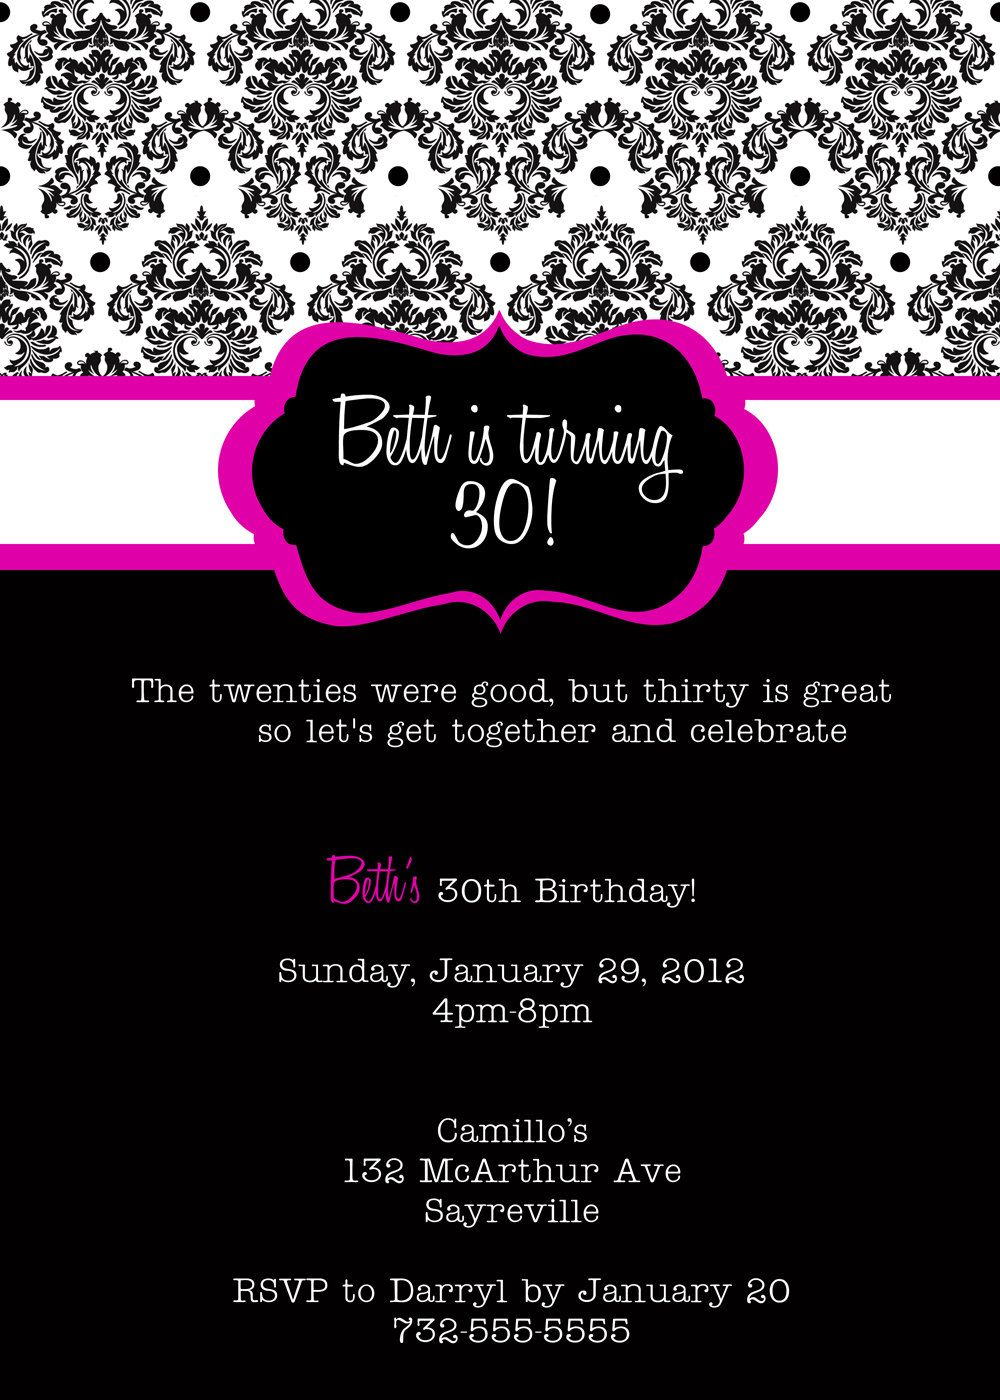 30th Birthday Invitations Printable 30 is Coming – 30th Birthday Invitations Templates Free Printable